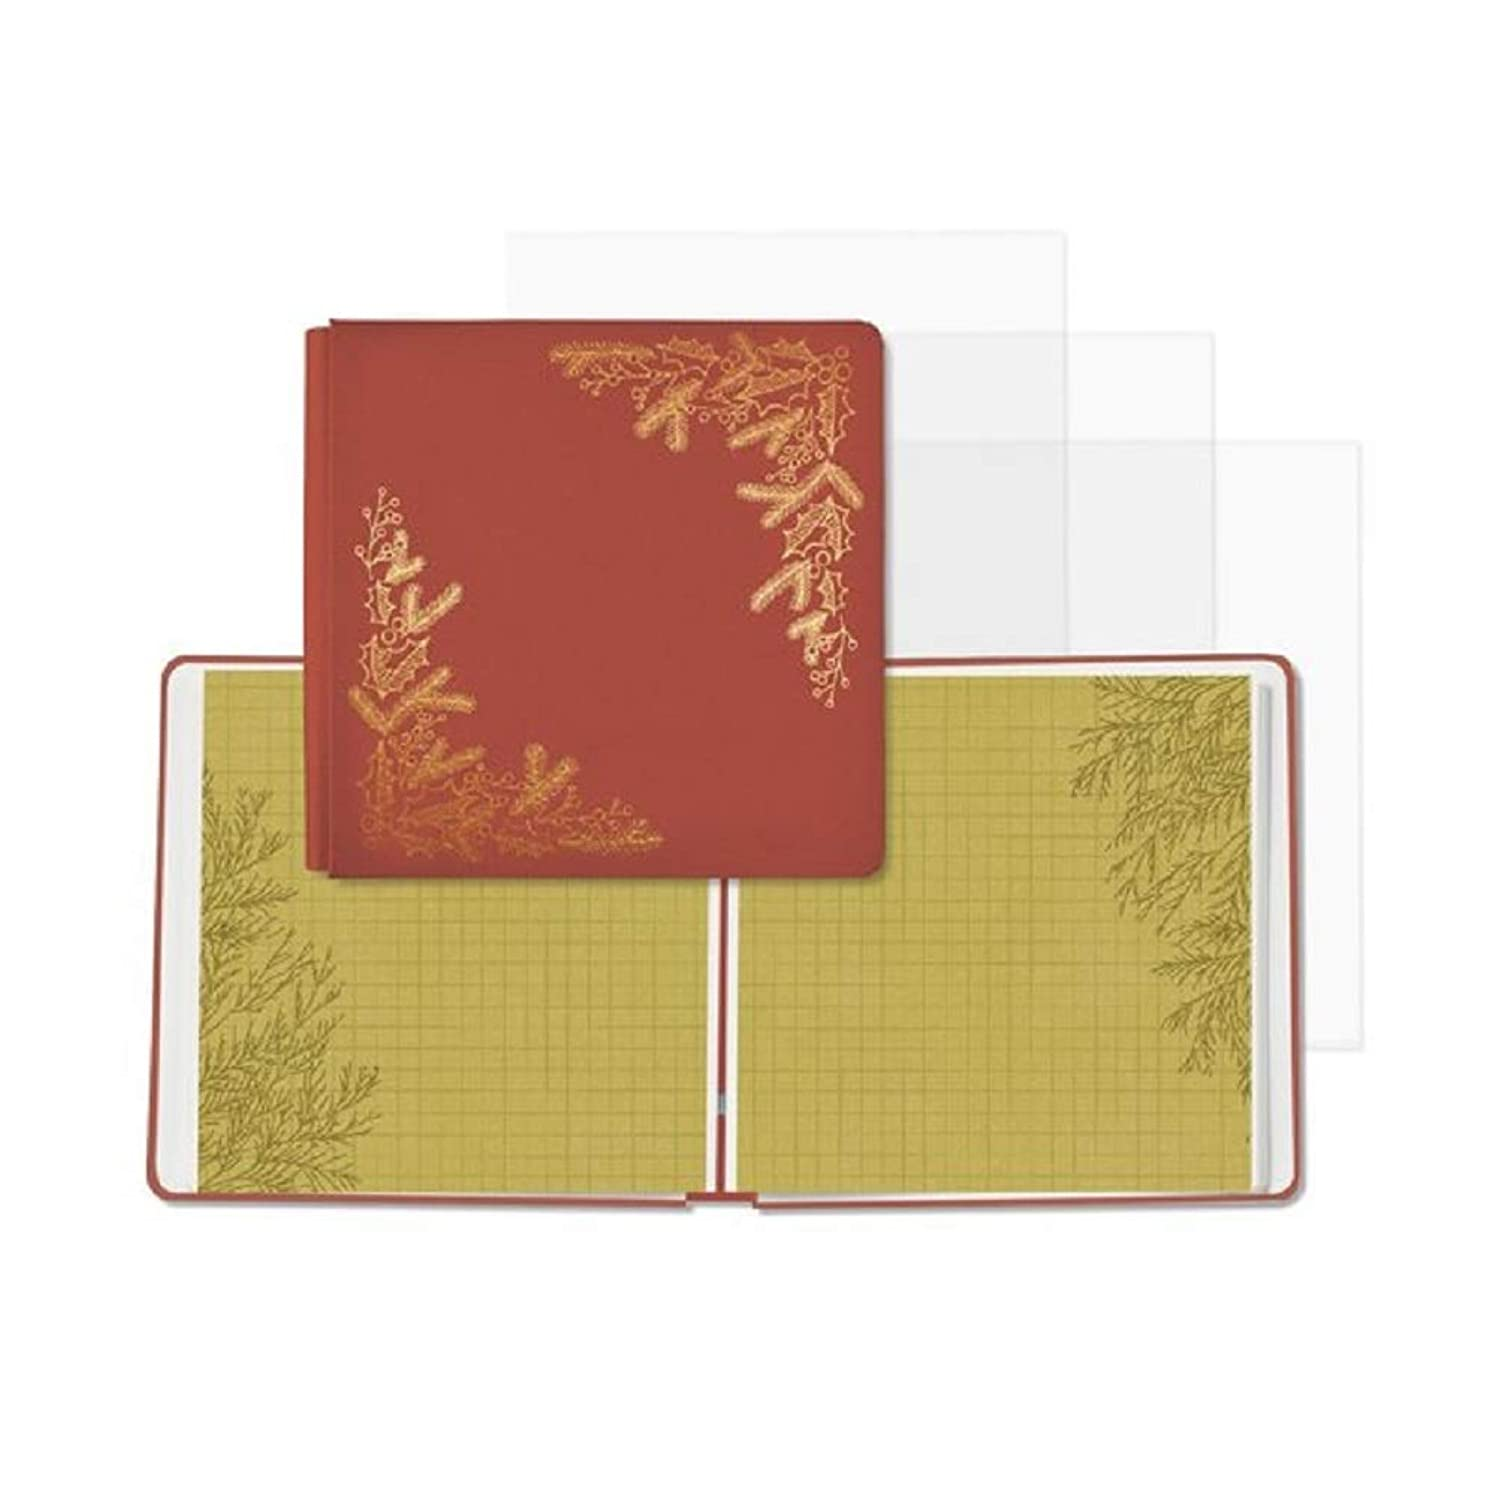 Creative Memories Season's Greetings 12x12 Fast2Fab Foiled Christmas Album 16/ Predesigned Pages & 16/ Page Protectors